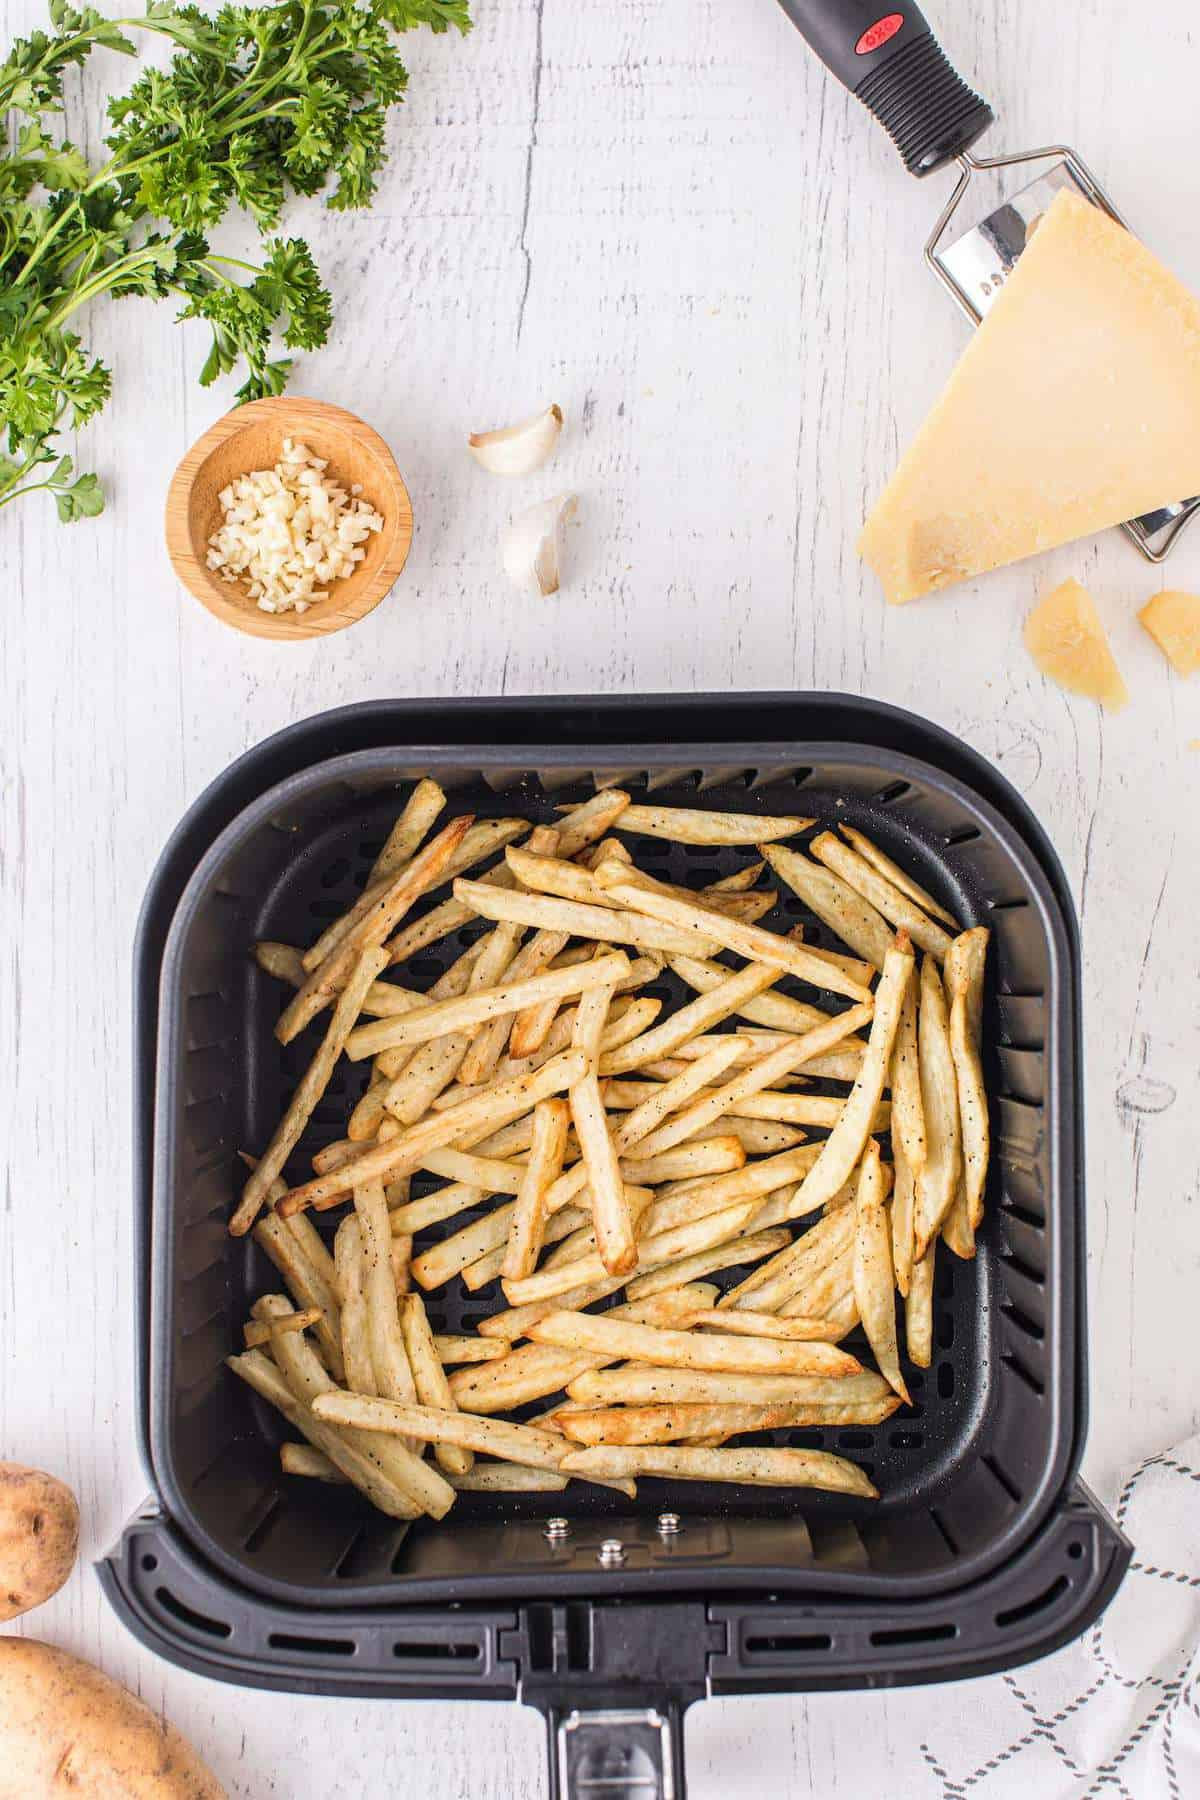 cooked fries in the air fryer basket